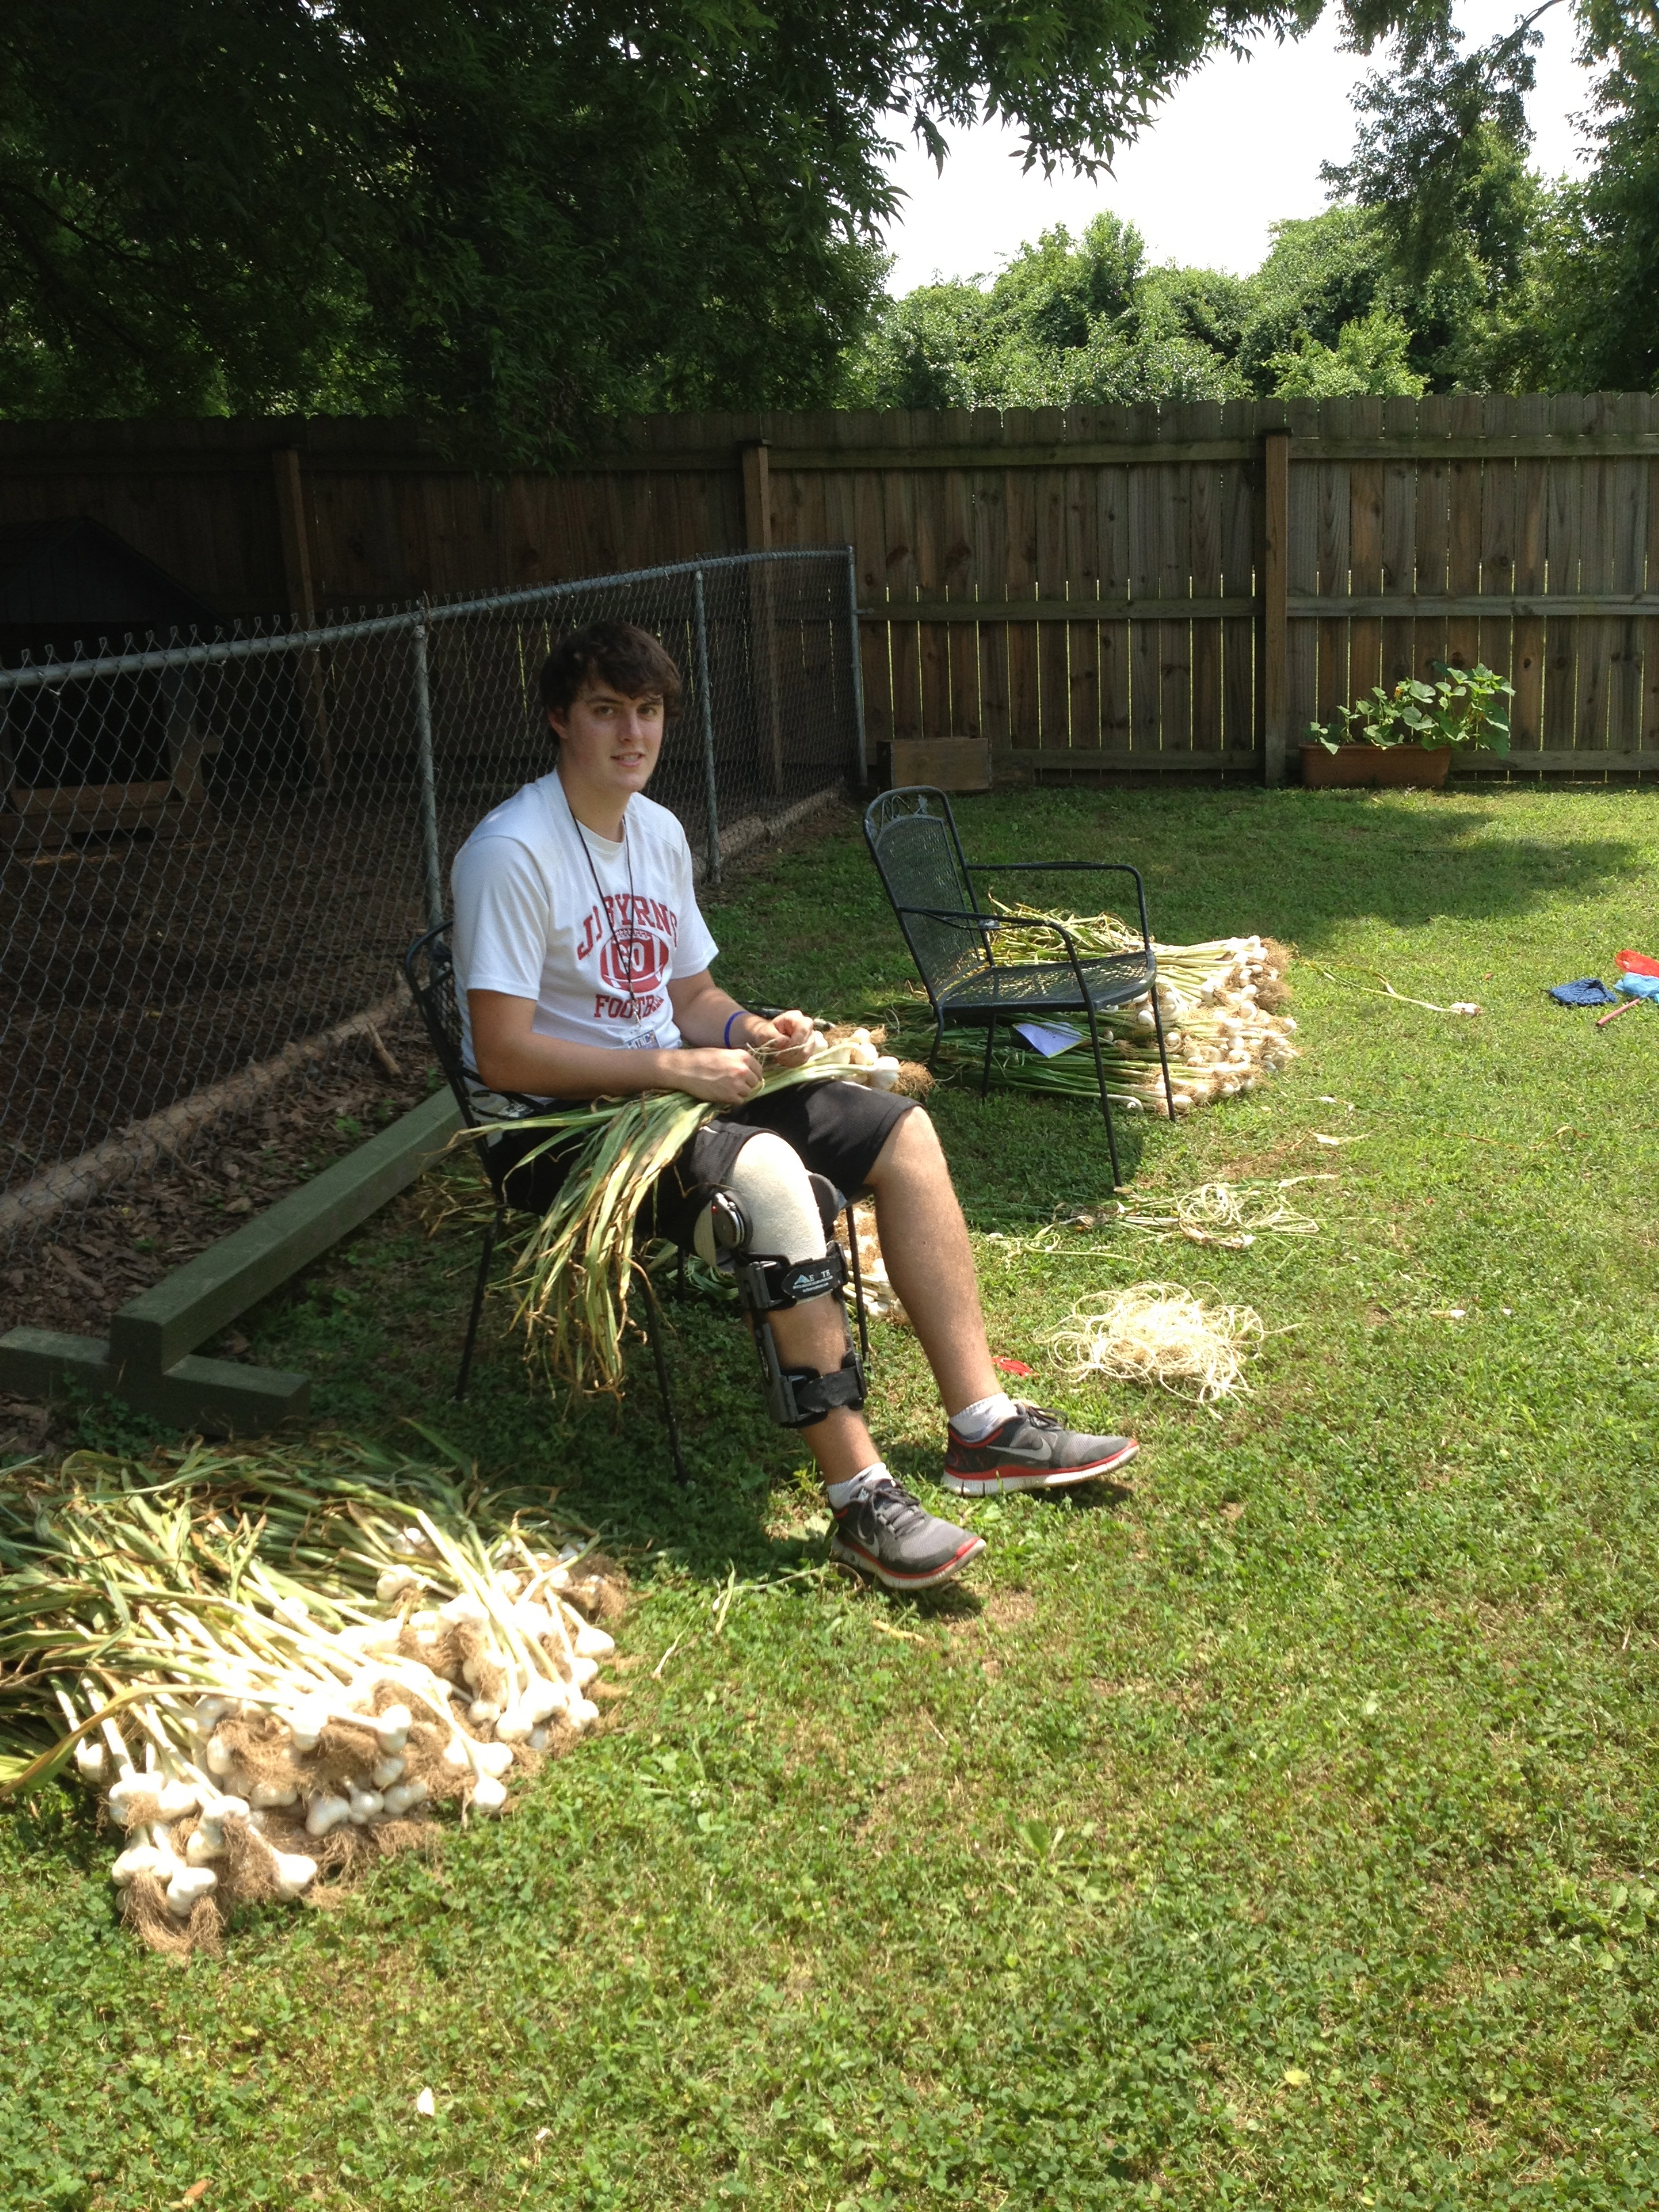 Though Levi couldn't dig in the garden with his peers due to a football injury, he and Seth shared good conversation about the way Jesus reached out to those who found themselves marginalized as a result of injury or sickness.